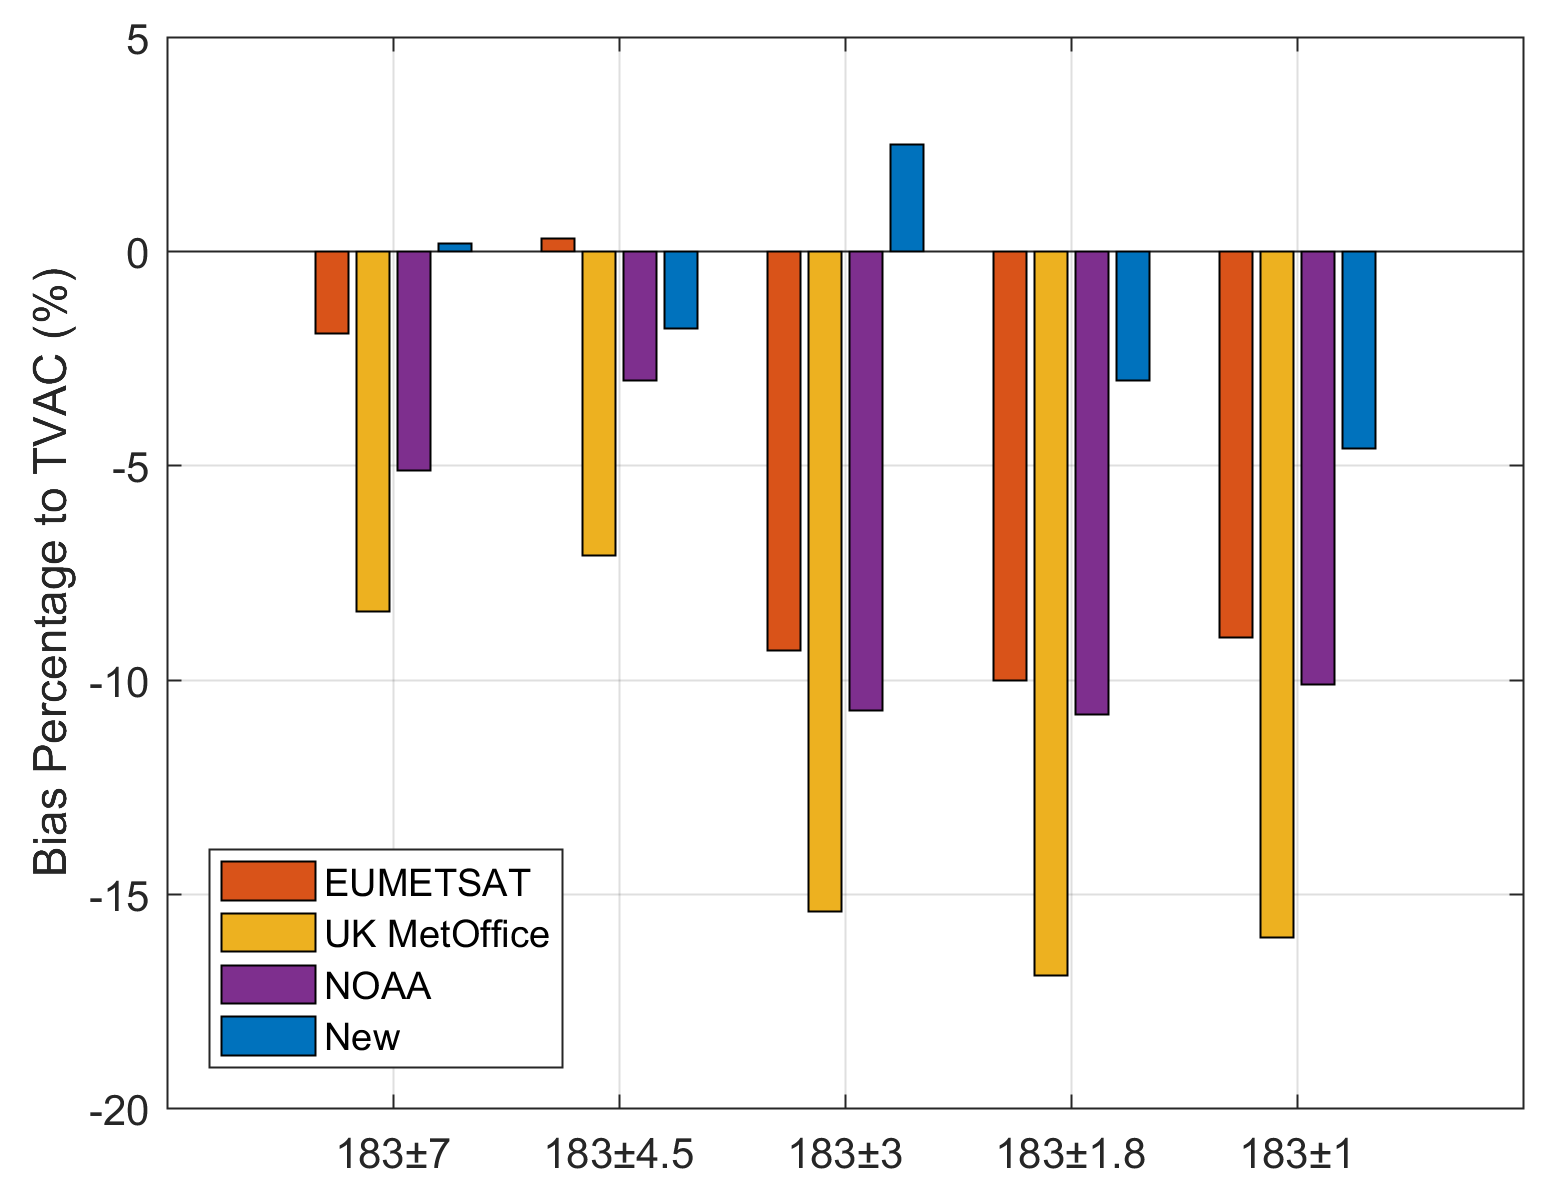 Figure. Comparing different algorithms for estimating NEDT against TVAC measurement. The new algorithm out-performs traditional algorithms of EUMETSAT, UK MetOffice and NOAA. While the 183 GHz is prone to 1/f noise, the new algorithm produces an accurate estimate of NEDT and is superior to traditional algorithms.